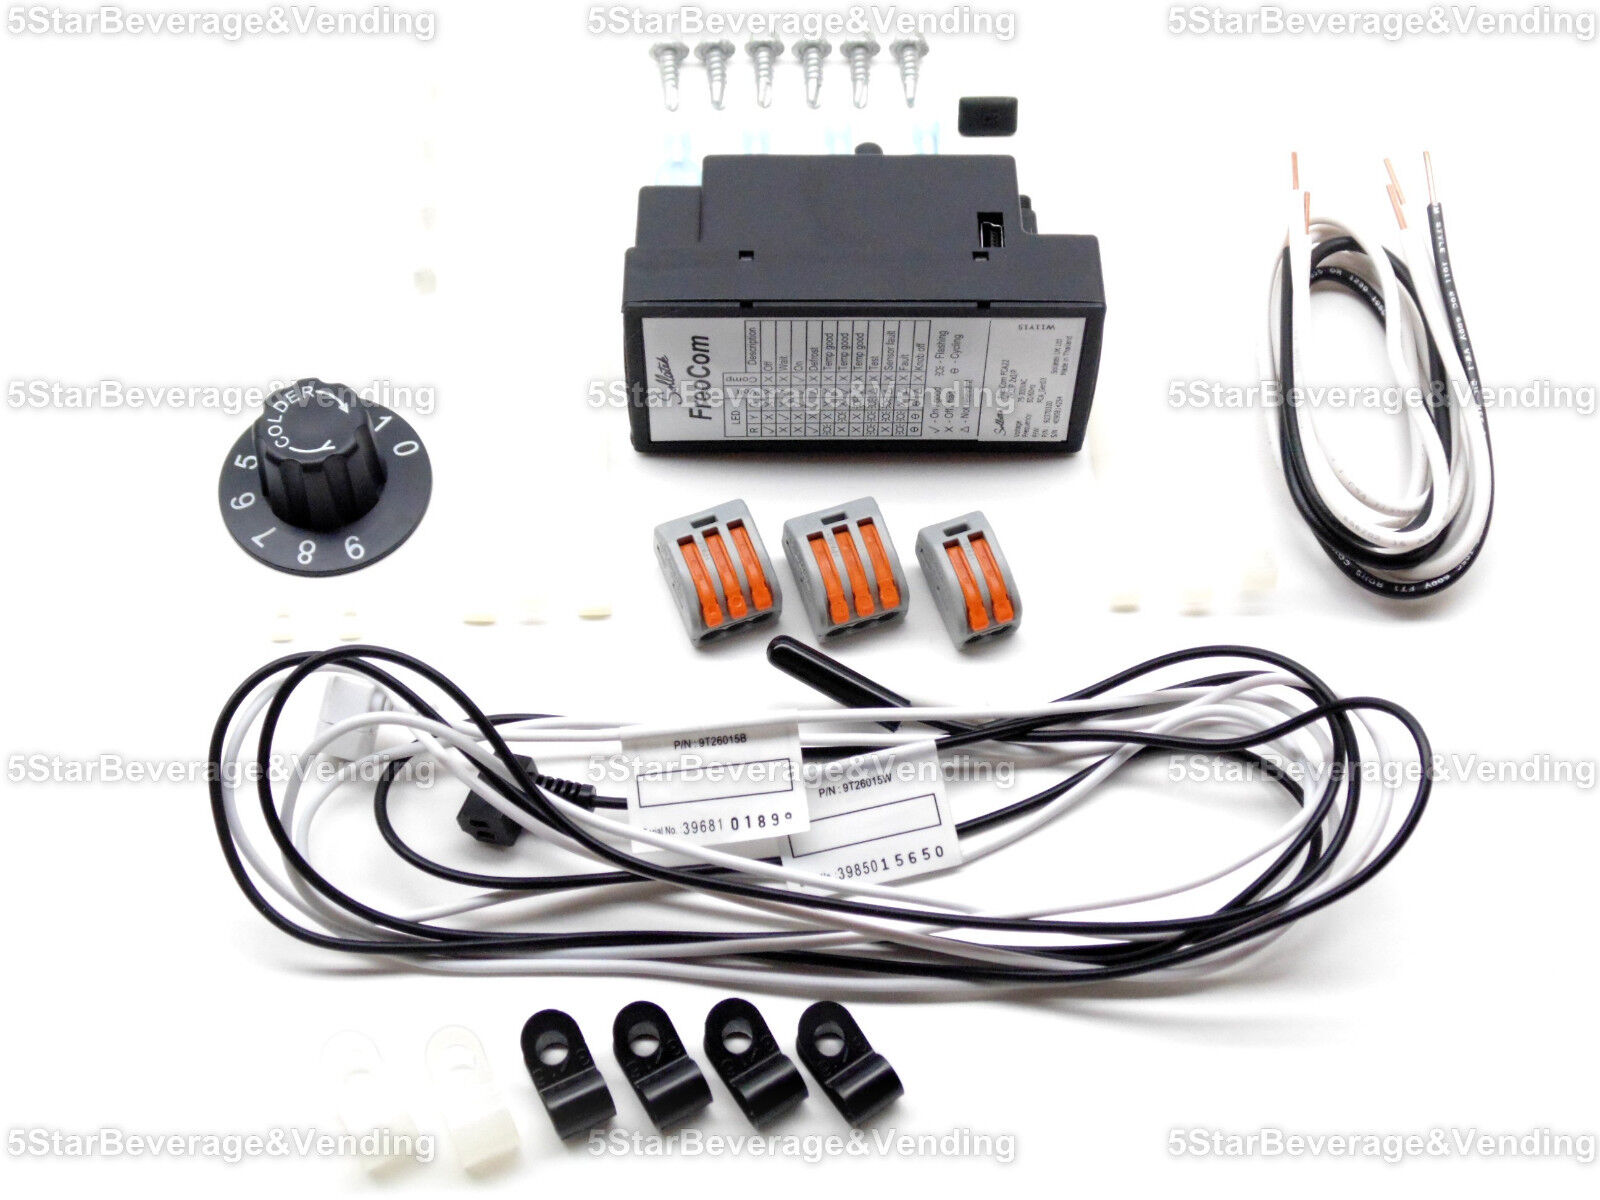 new true 991224 electronic cold control thermostat kit replaces same day shipping if payment is received by 12pm pacific time